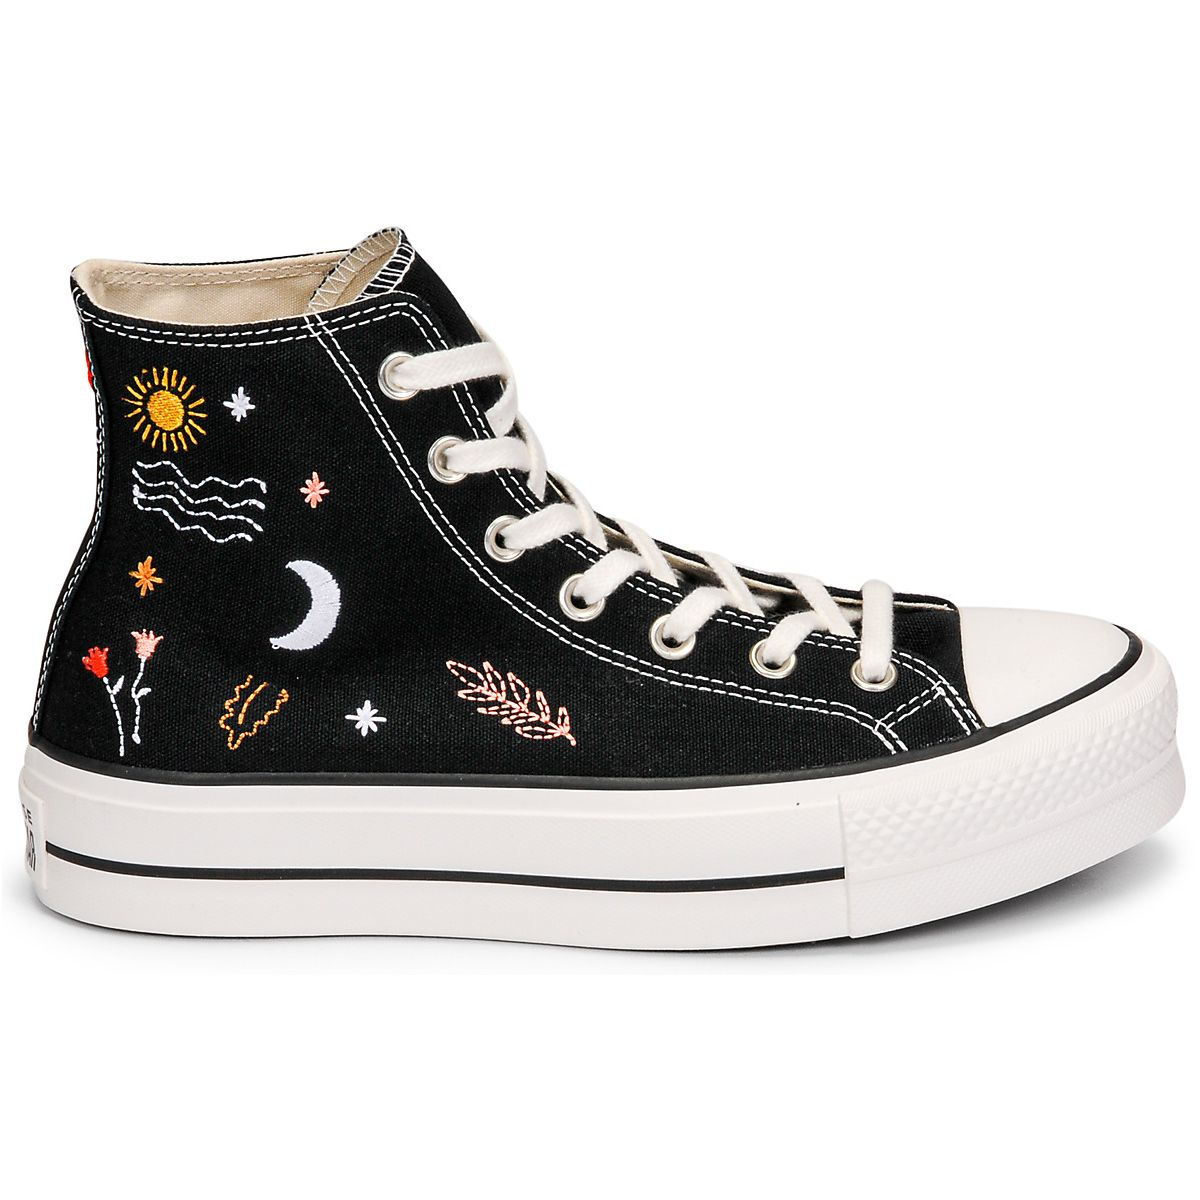 IRELAND CHUCK TAYLOR ALL STAR LIFT:NOIR/CANVAS/TEXTILE/CAOUTCHOUC/Noir